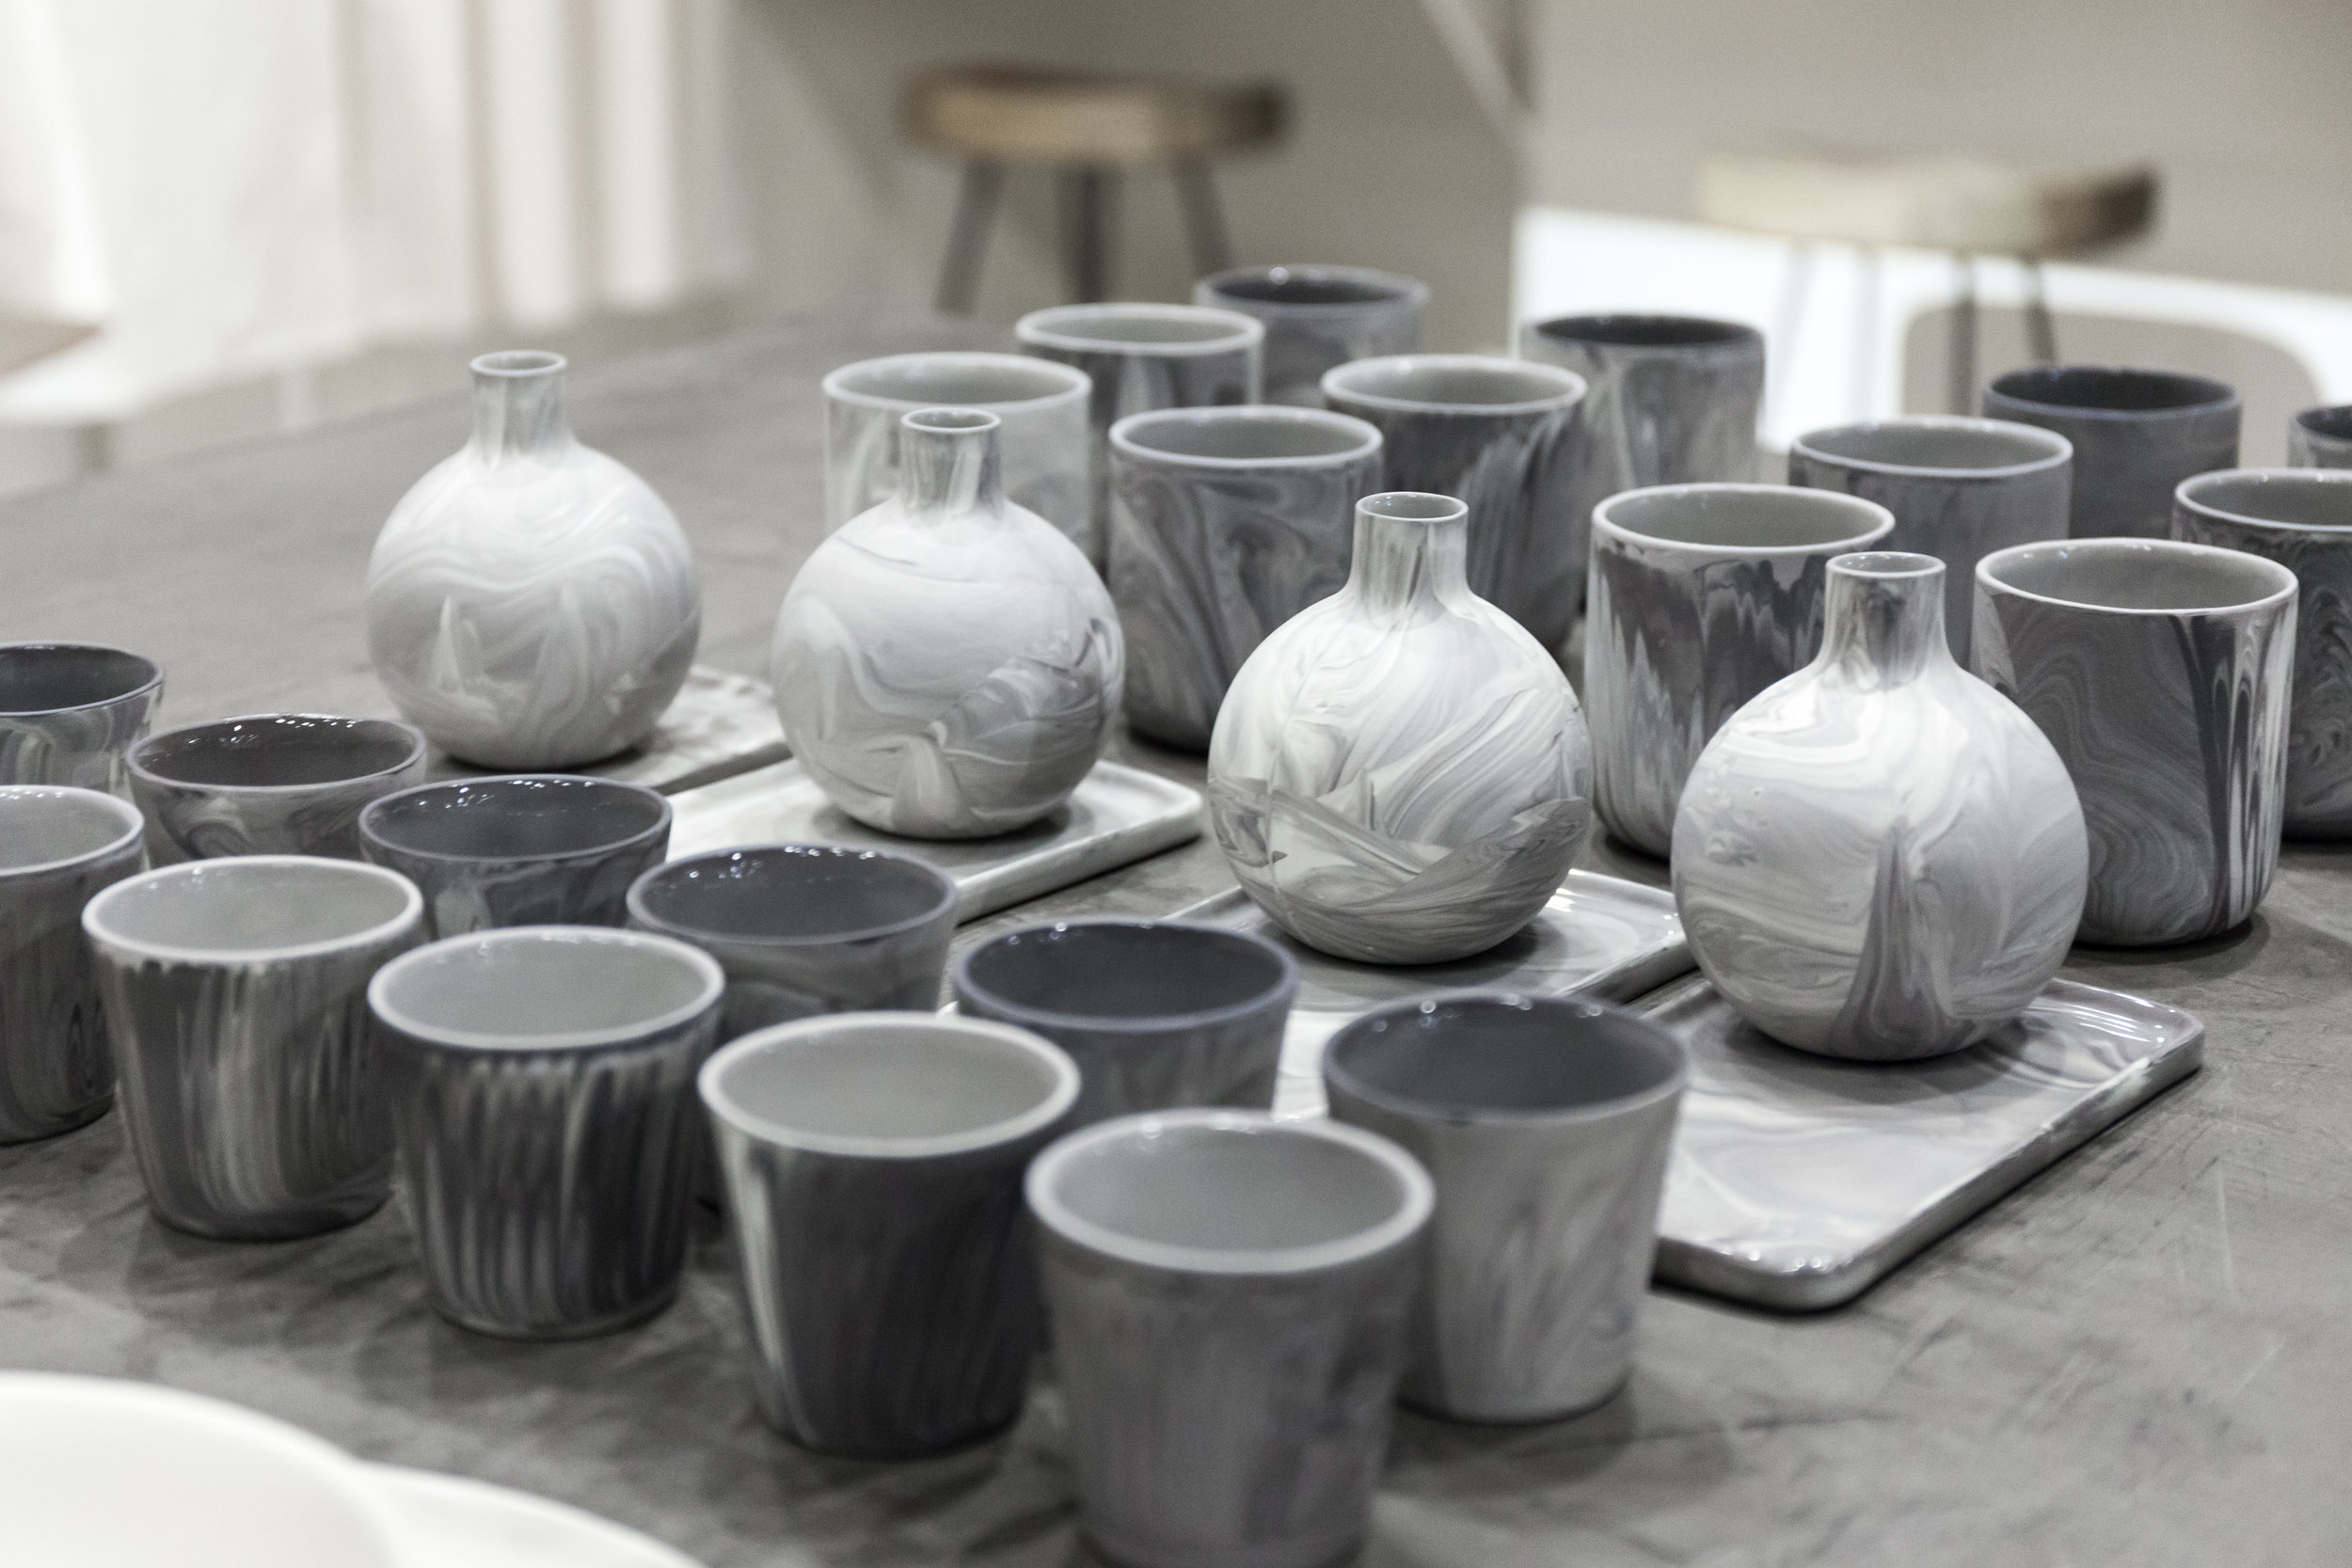 The Rikumo x Felt + Fat  collection  (pictured here) includes cups, tumblers, vases and decorative trays, all in Felt + Fat's signature marbled finish and a Rikumo-approved neutral palette.